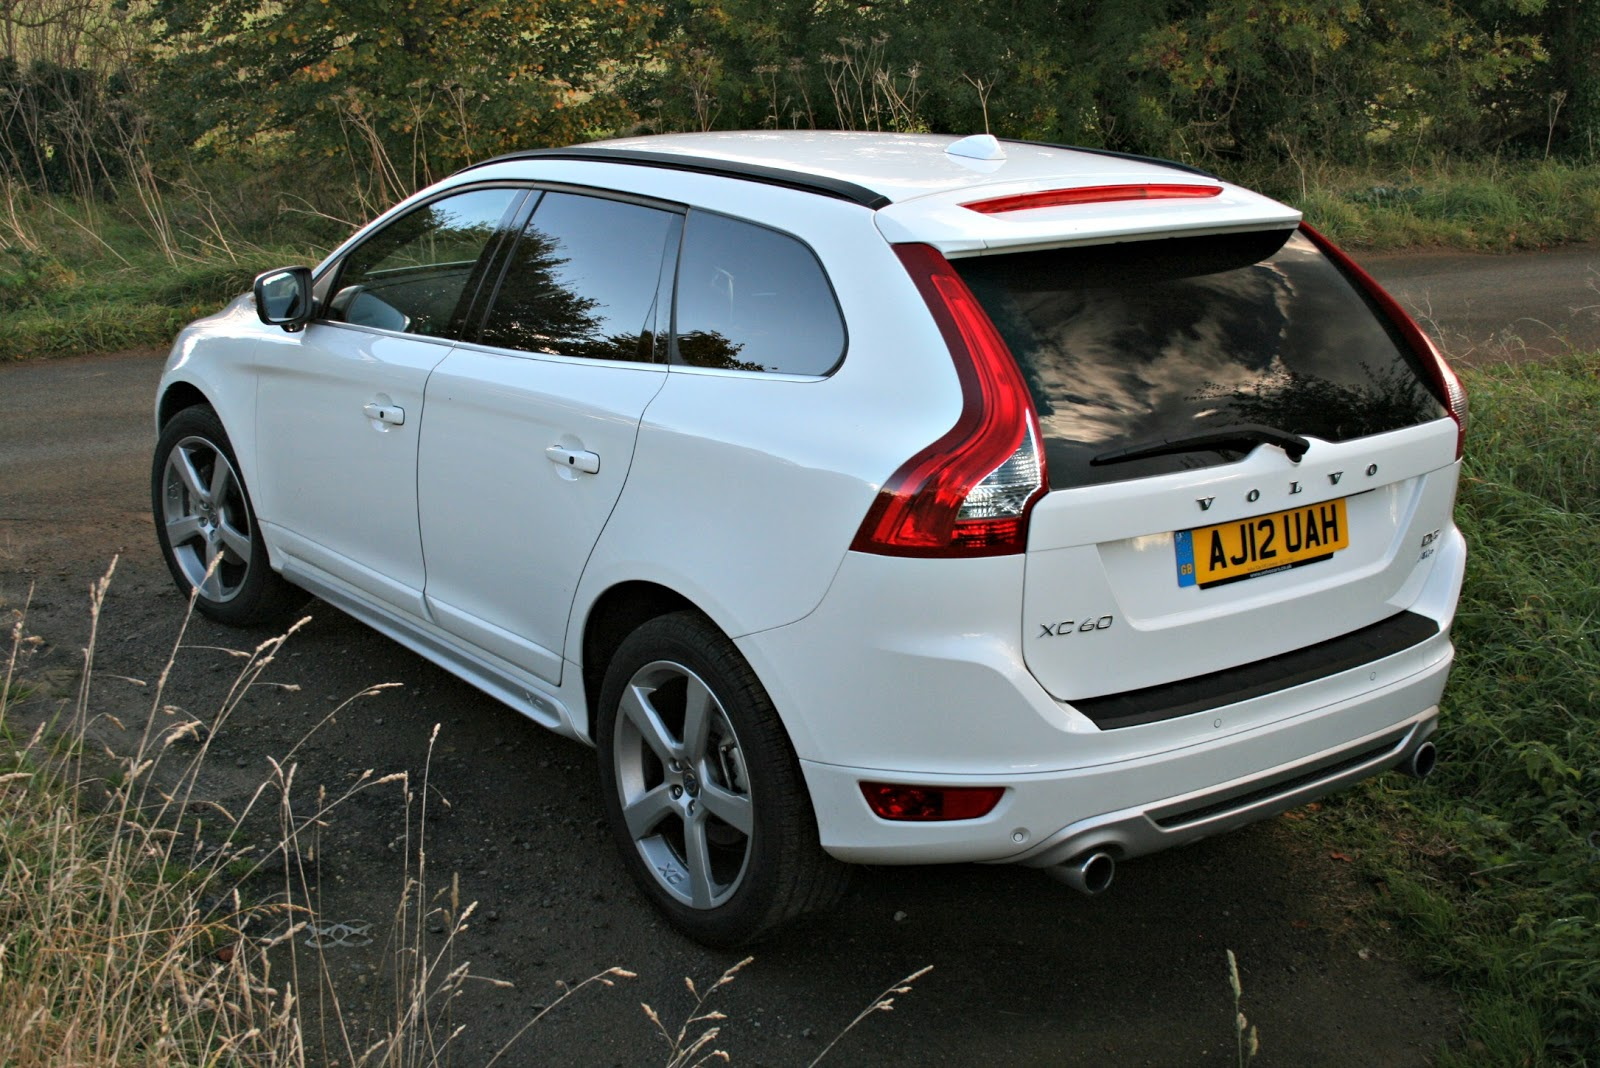 2014 Volvo Xc60 R Design White Images & Pictures - Becuo